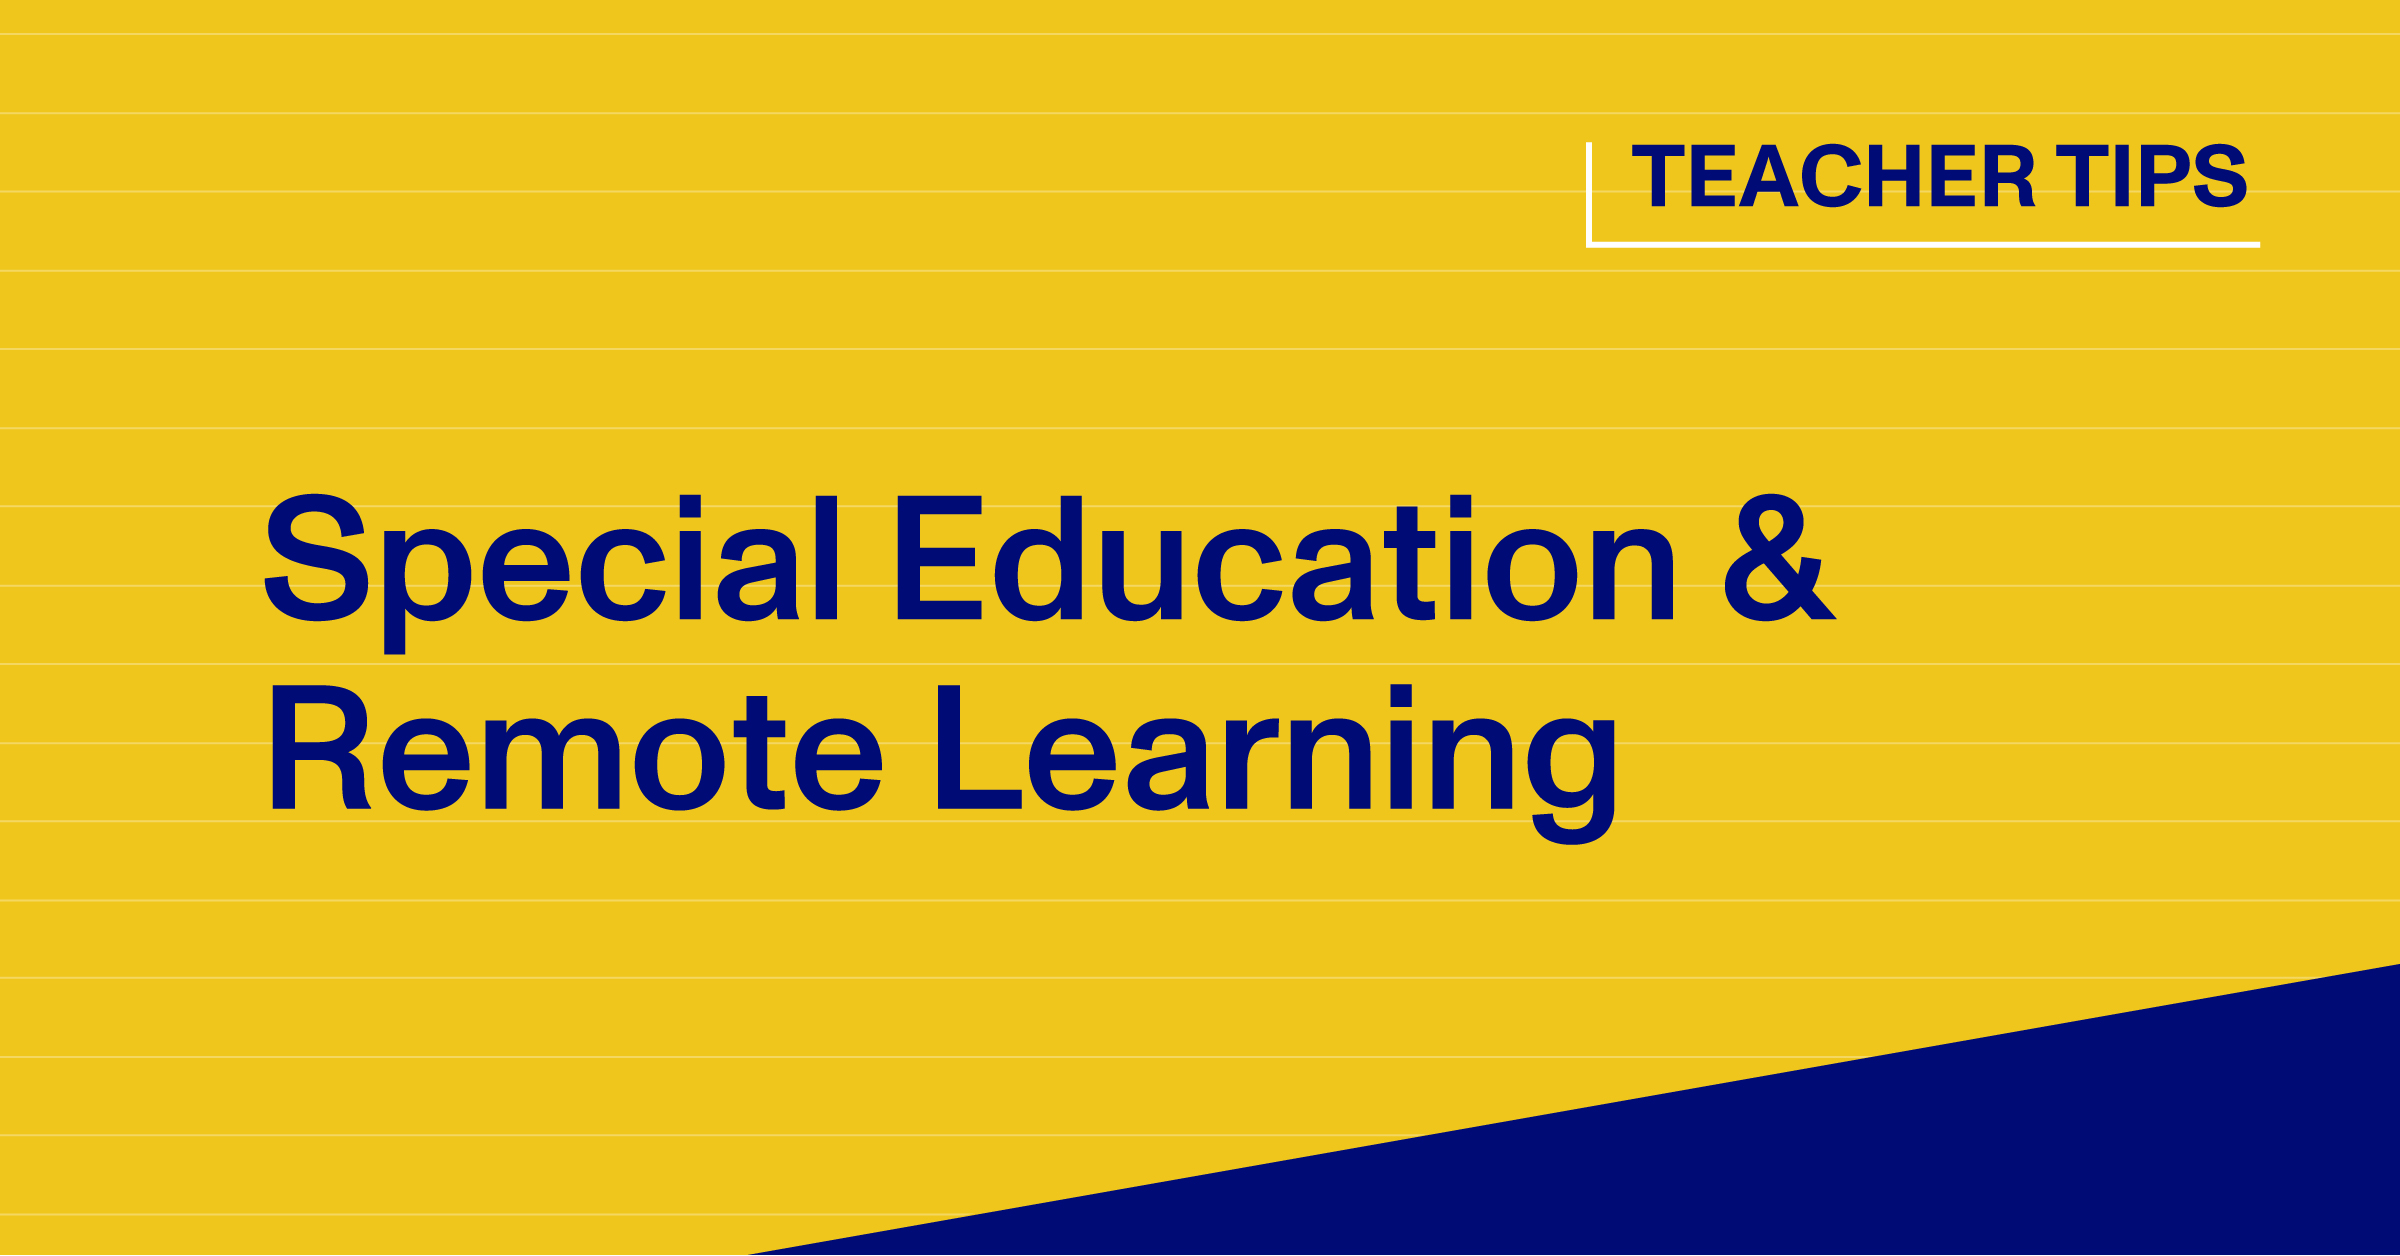 Special Education & Remote Learning